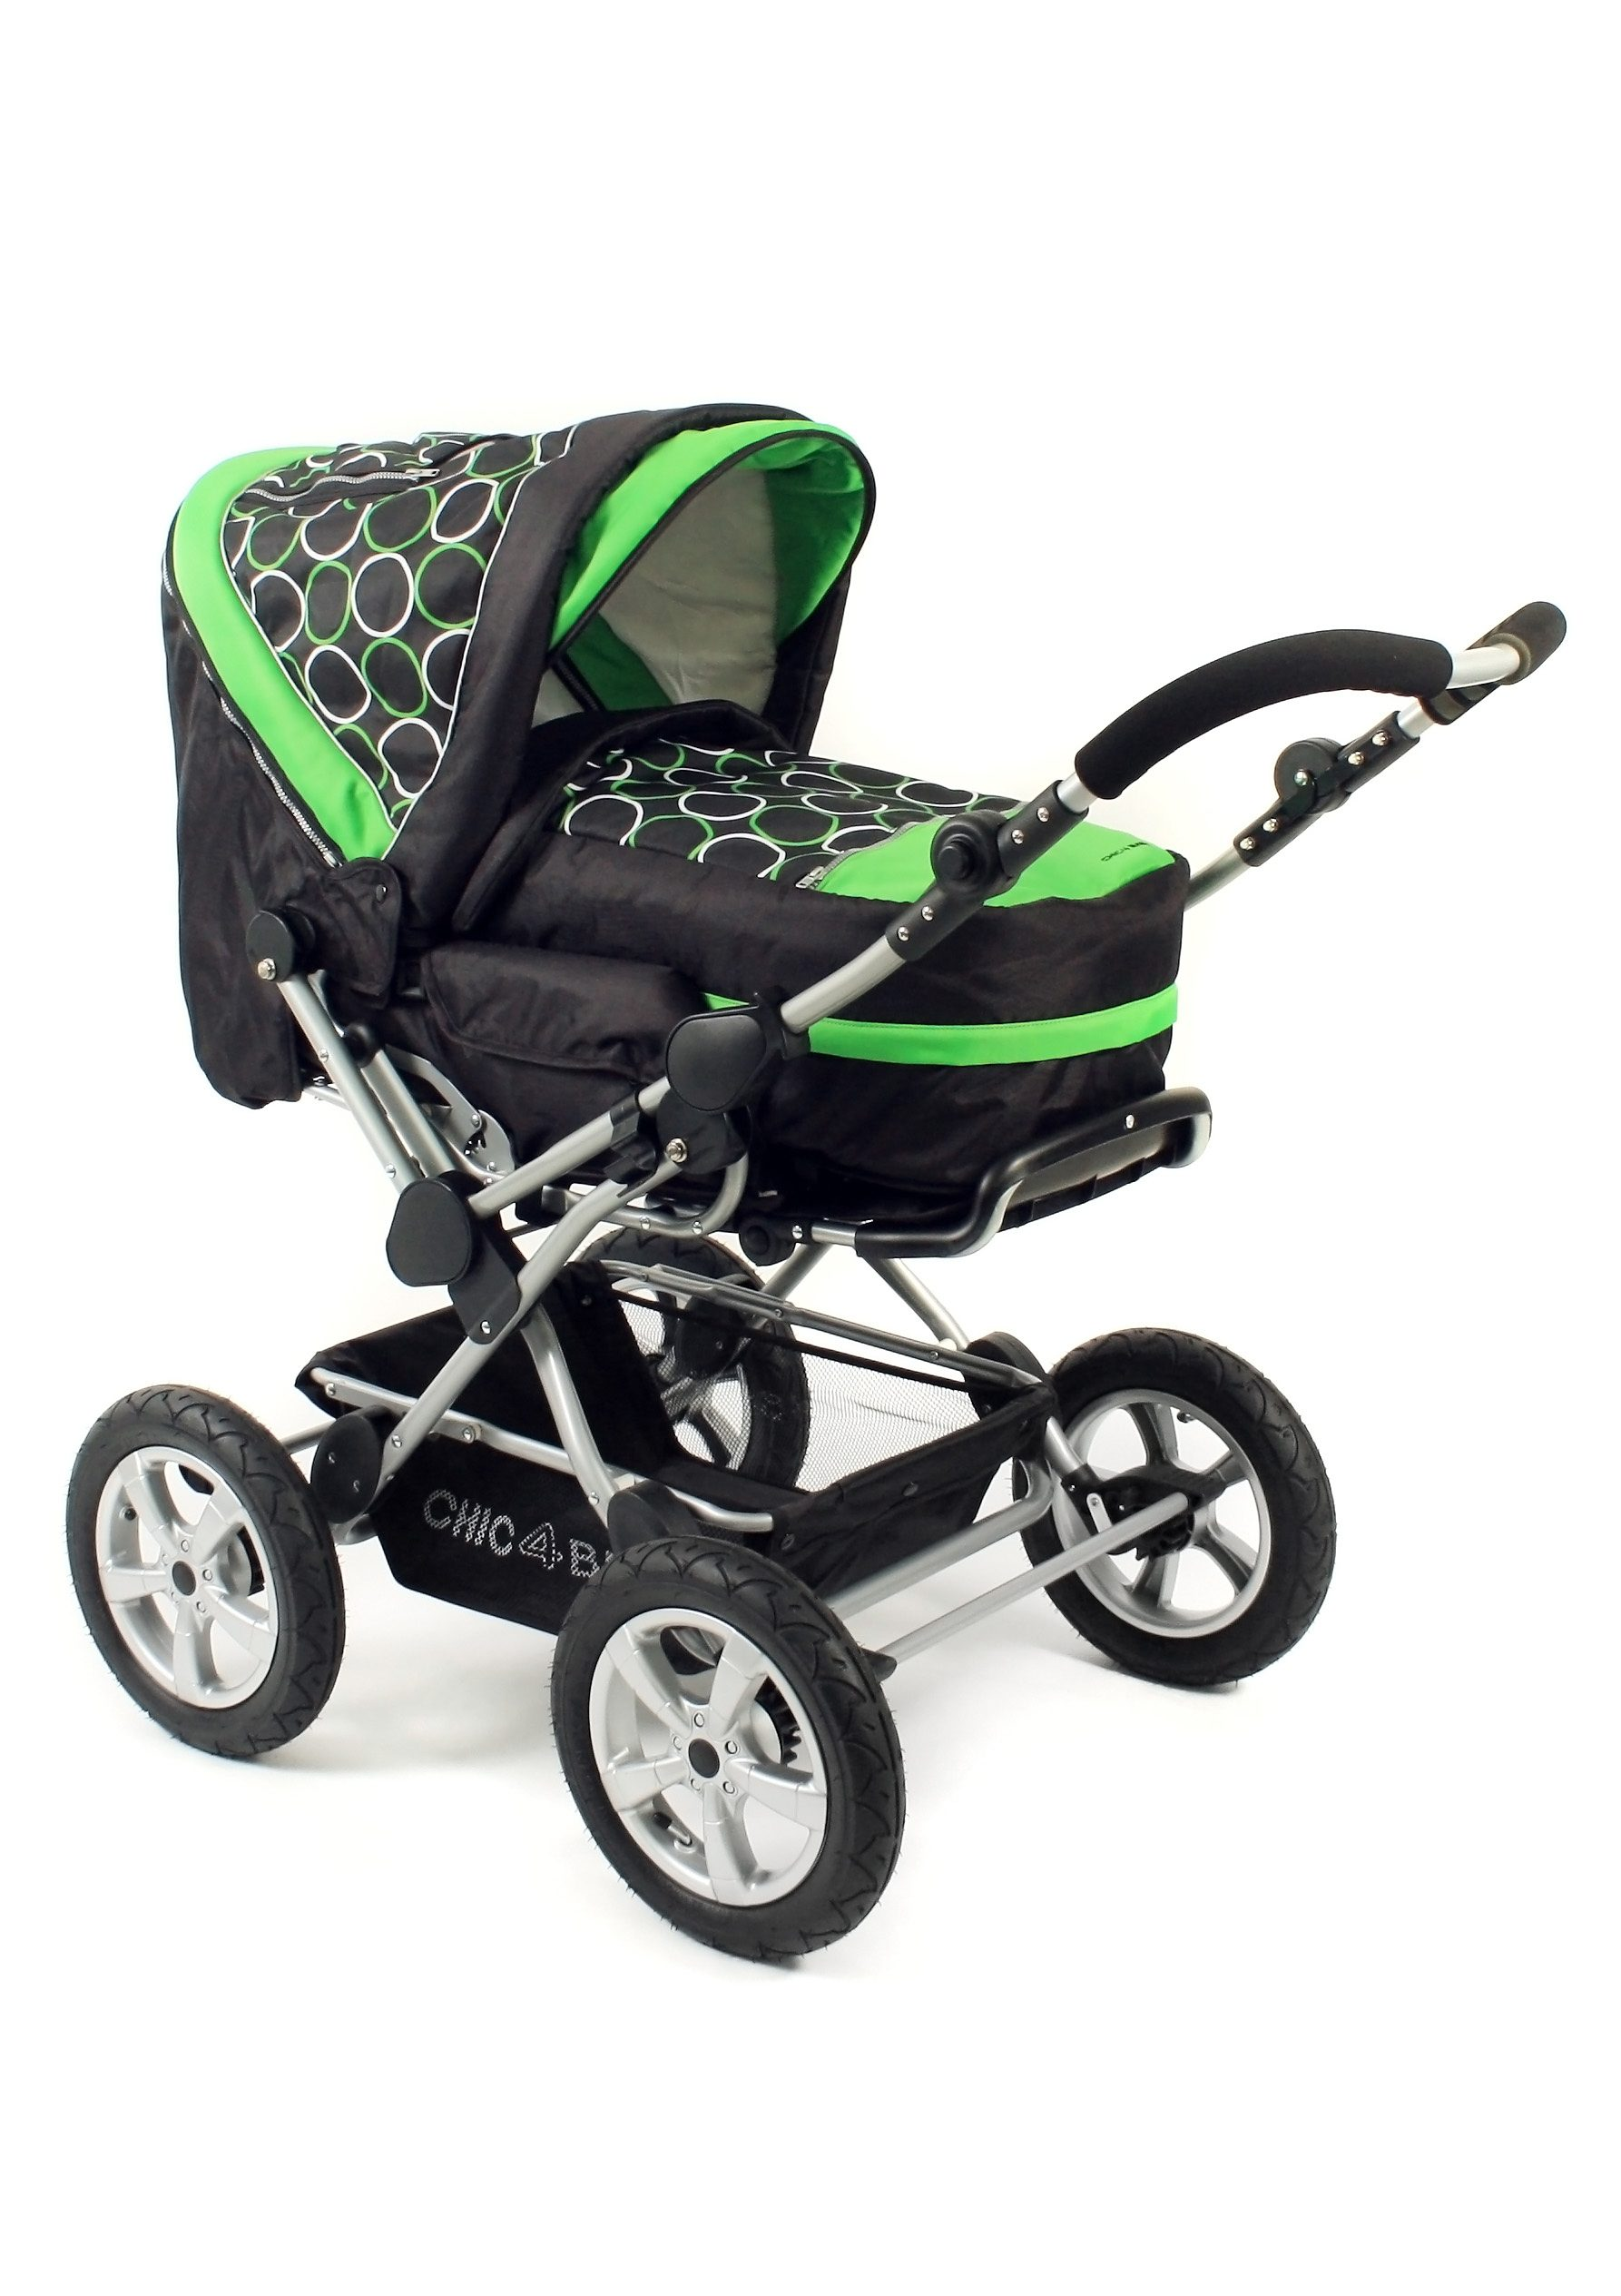 CHIC4BABY, Kombi-Kinderwagen »Viva, Orbit green«